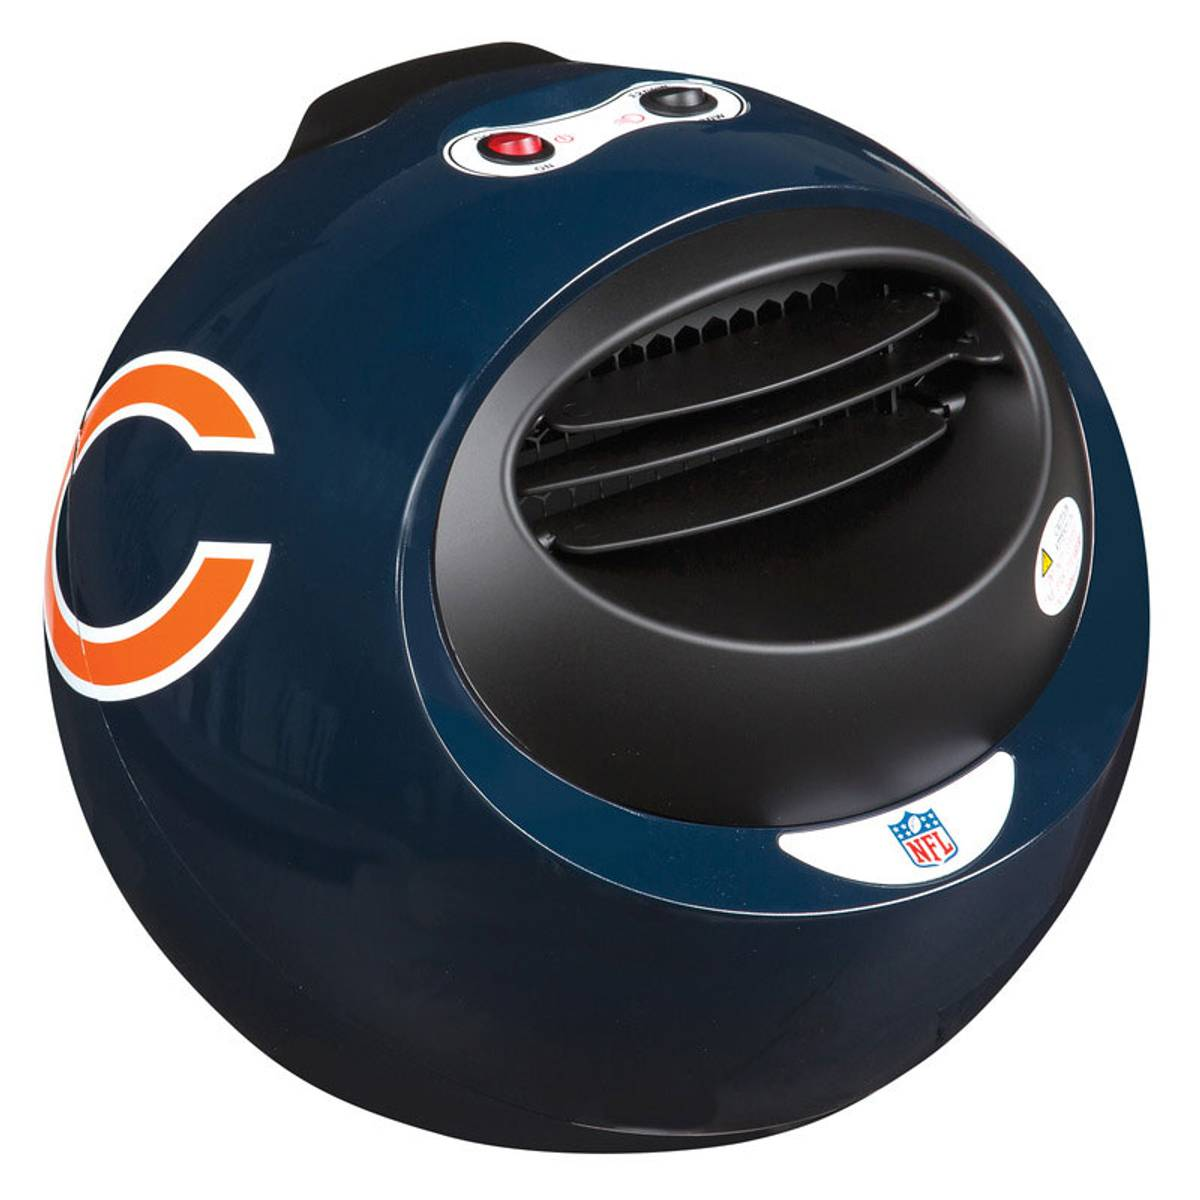 Chicago bears bathroom accessories - Share This